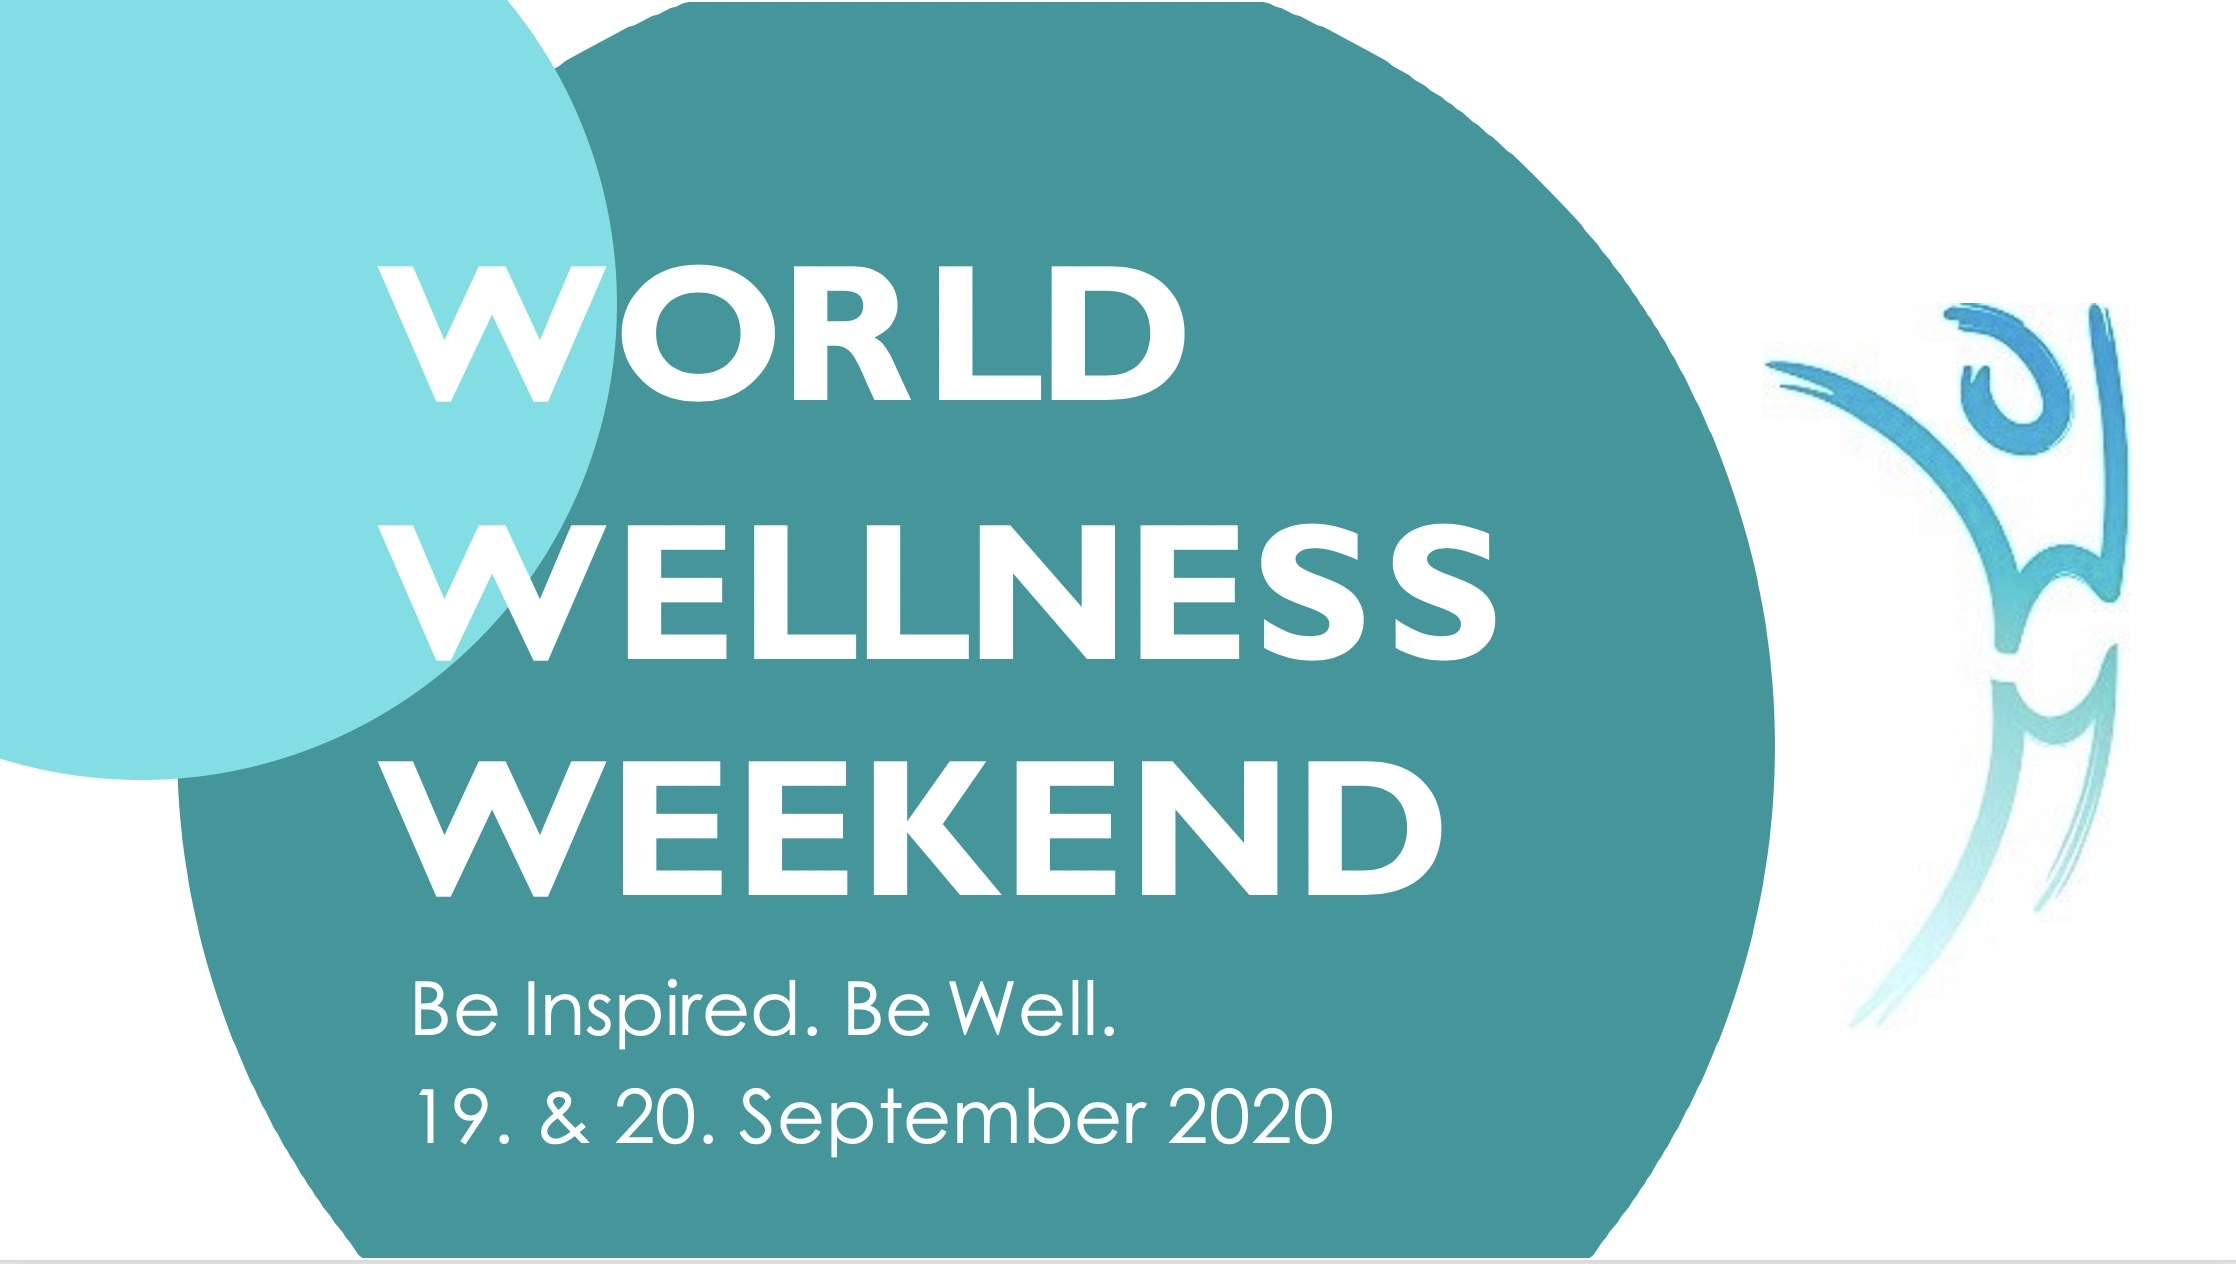 World Wellness Weekend 2020